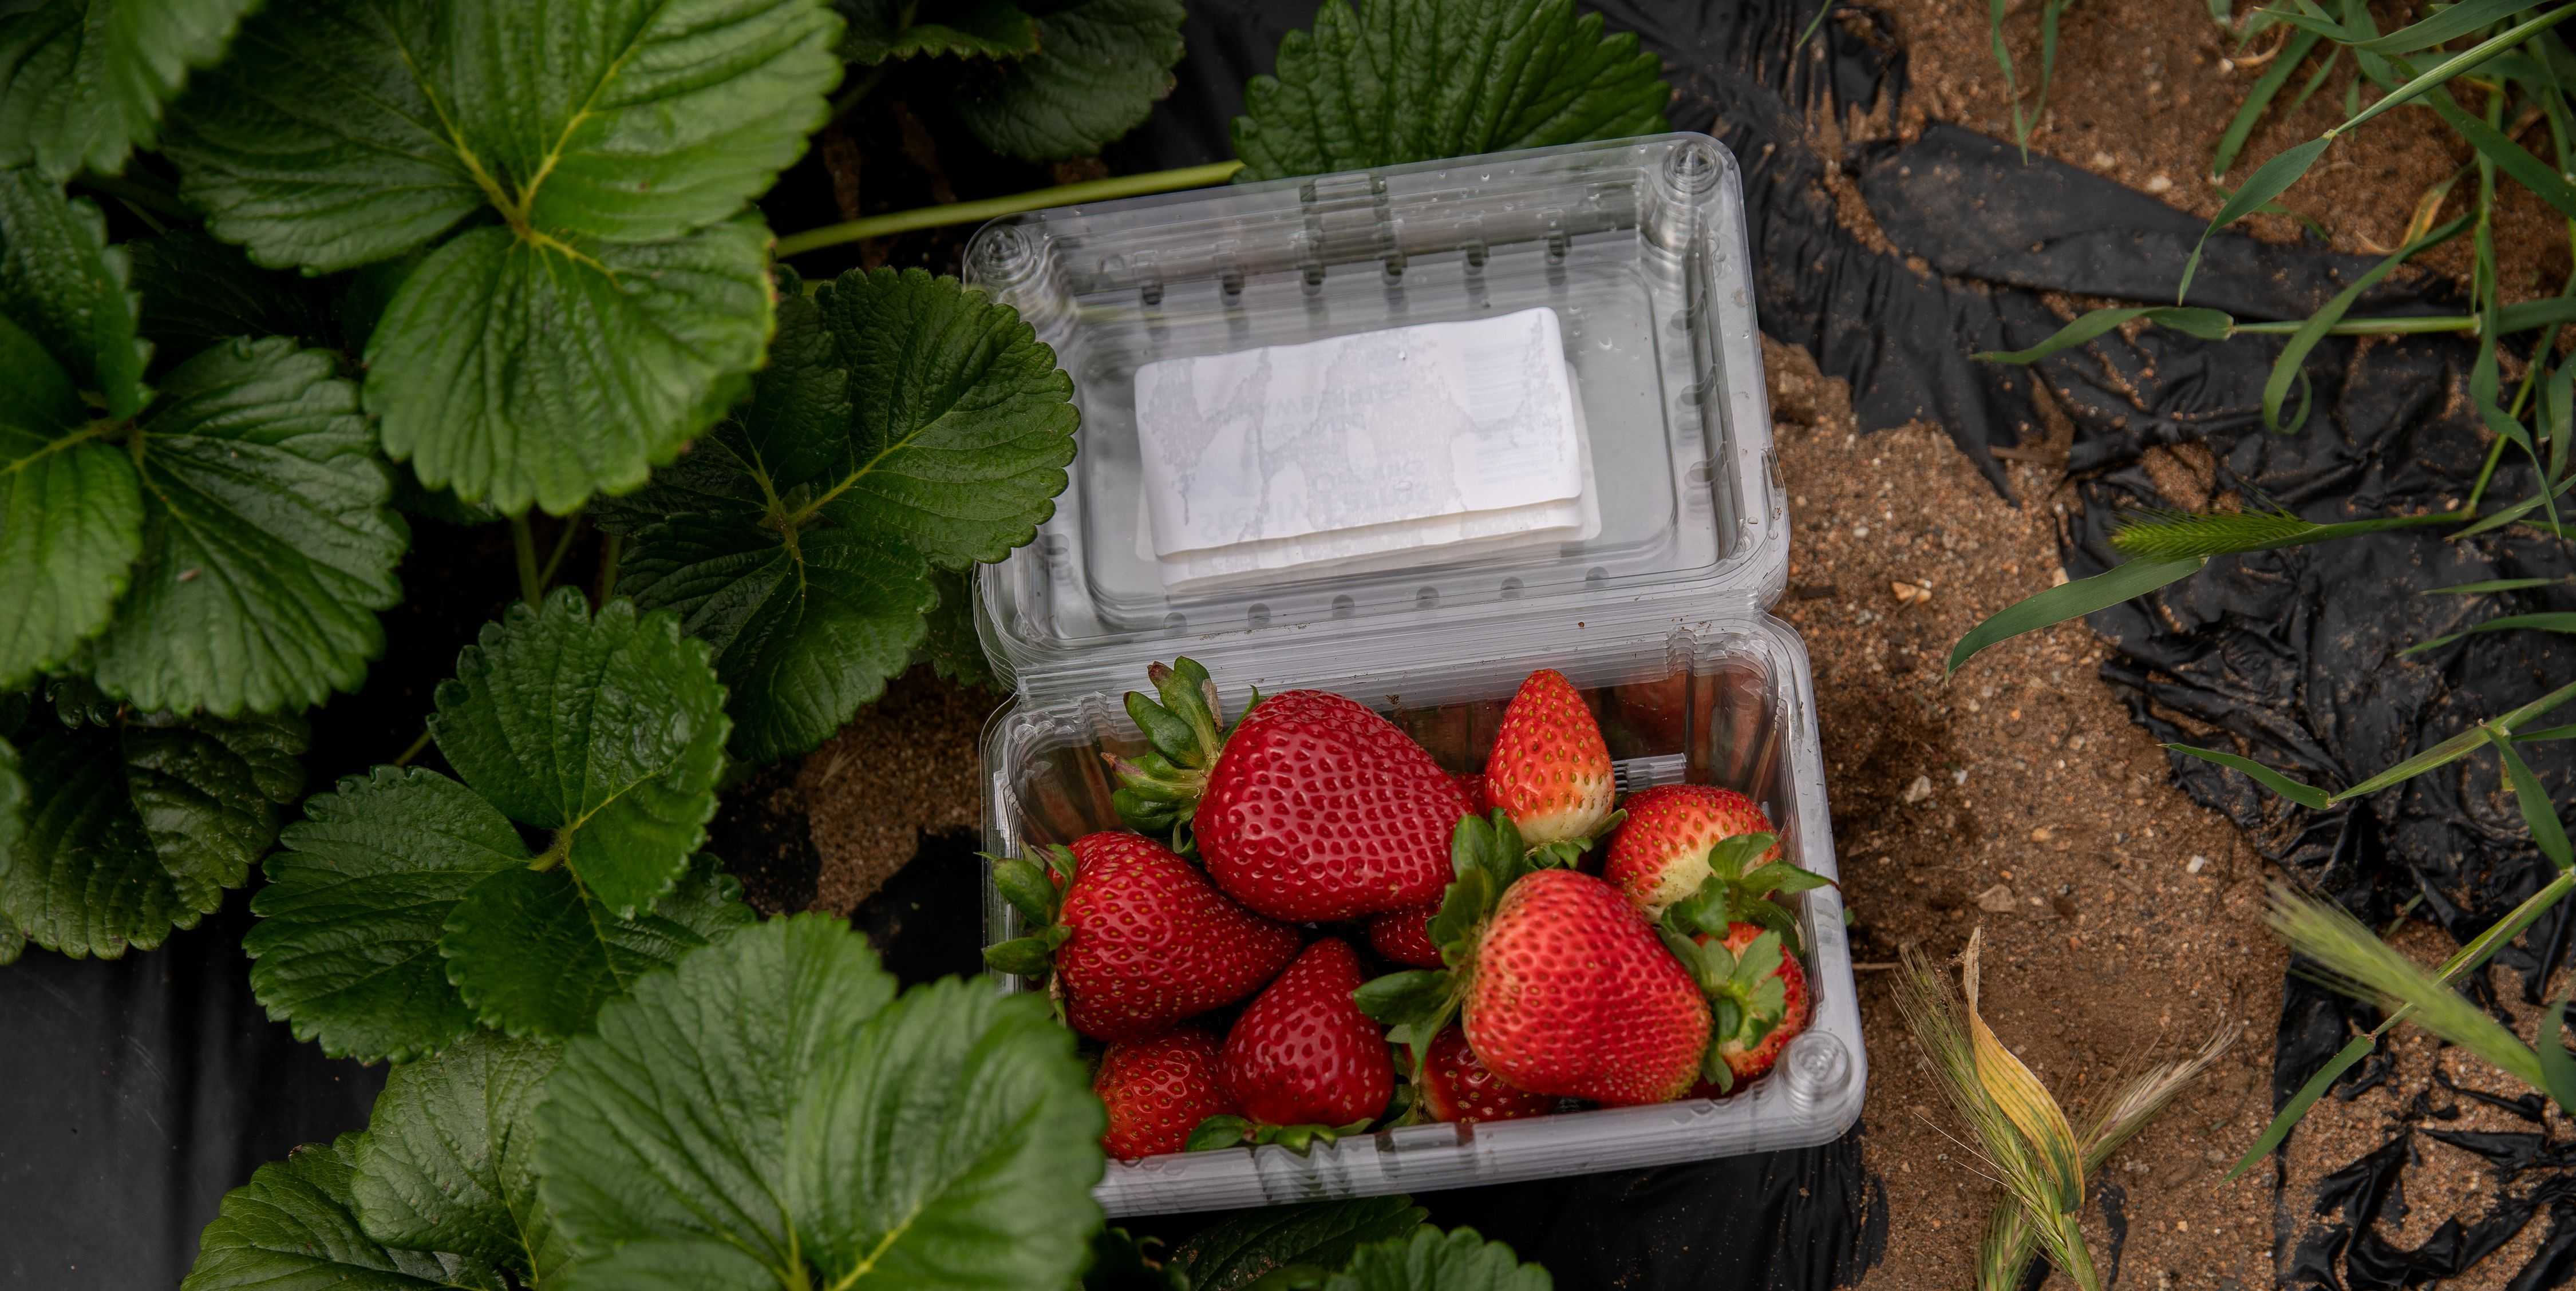 Dirty Dozen List 2020 – List of Produce With Pesticides, According to the EWG